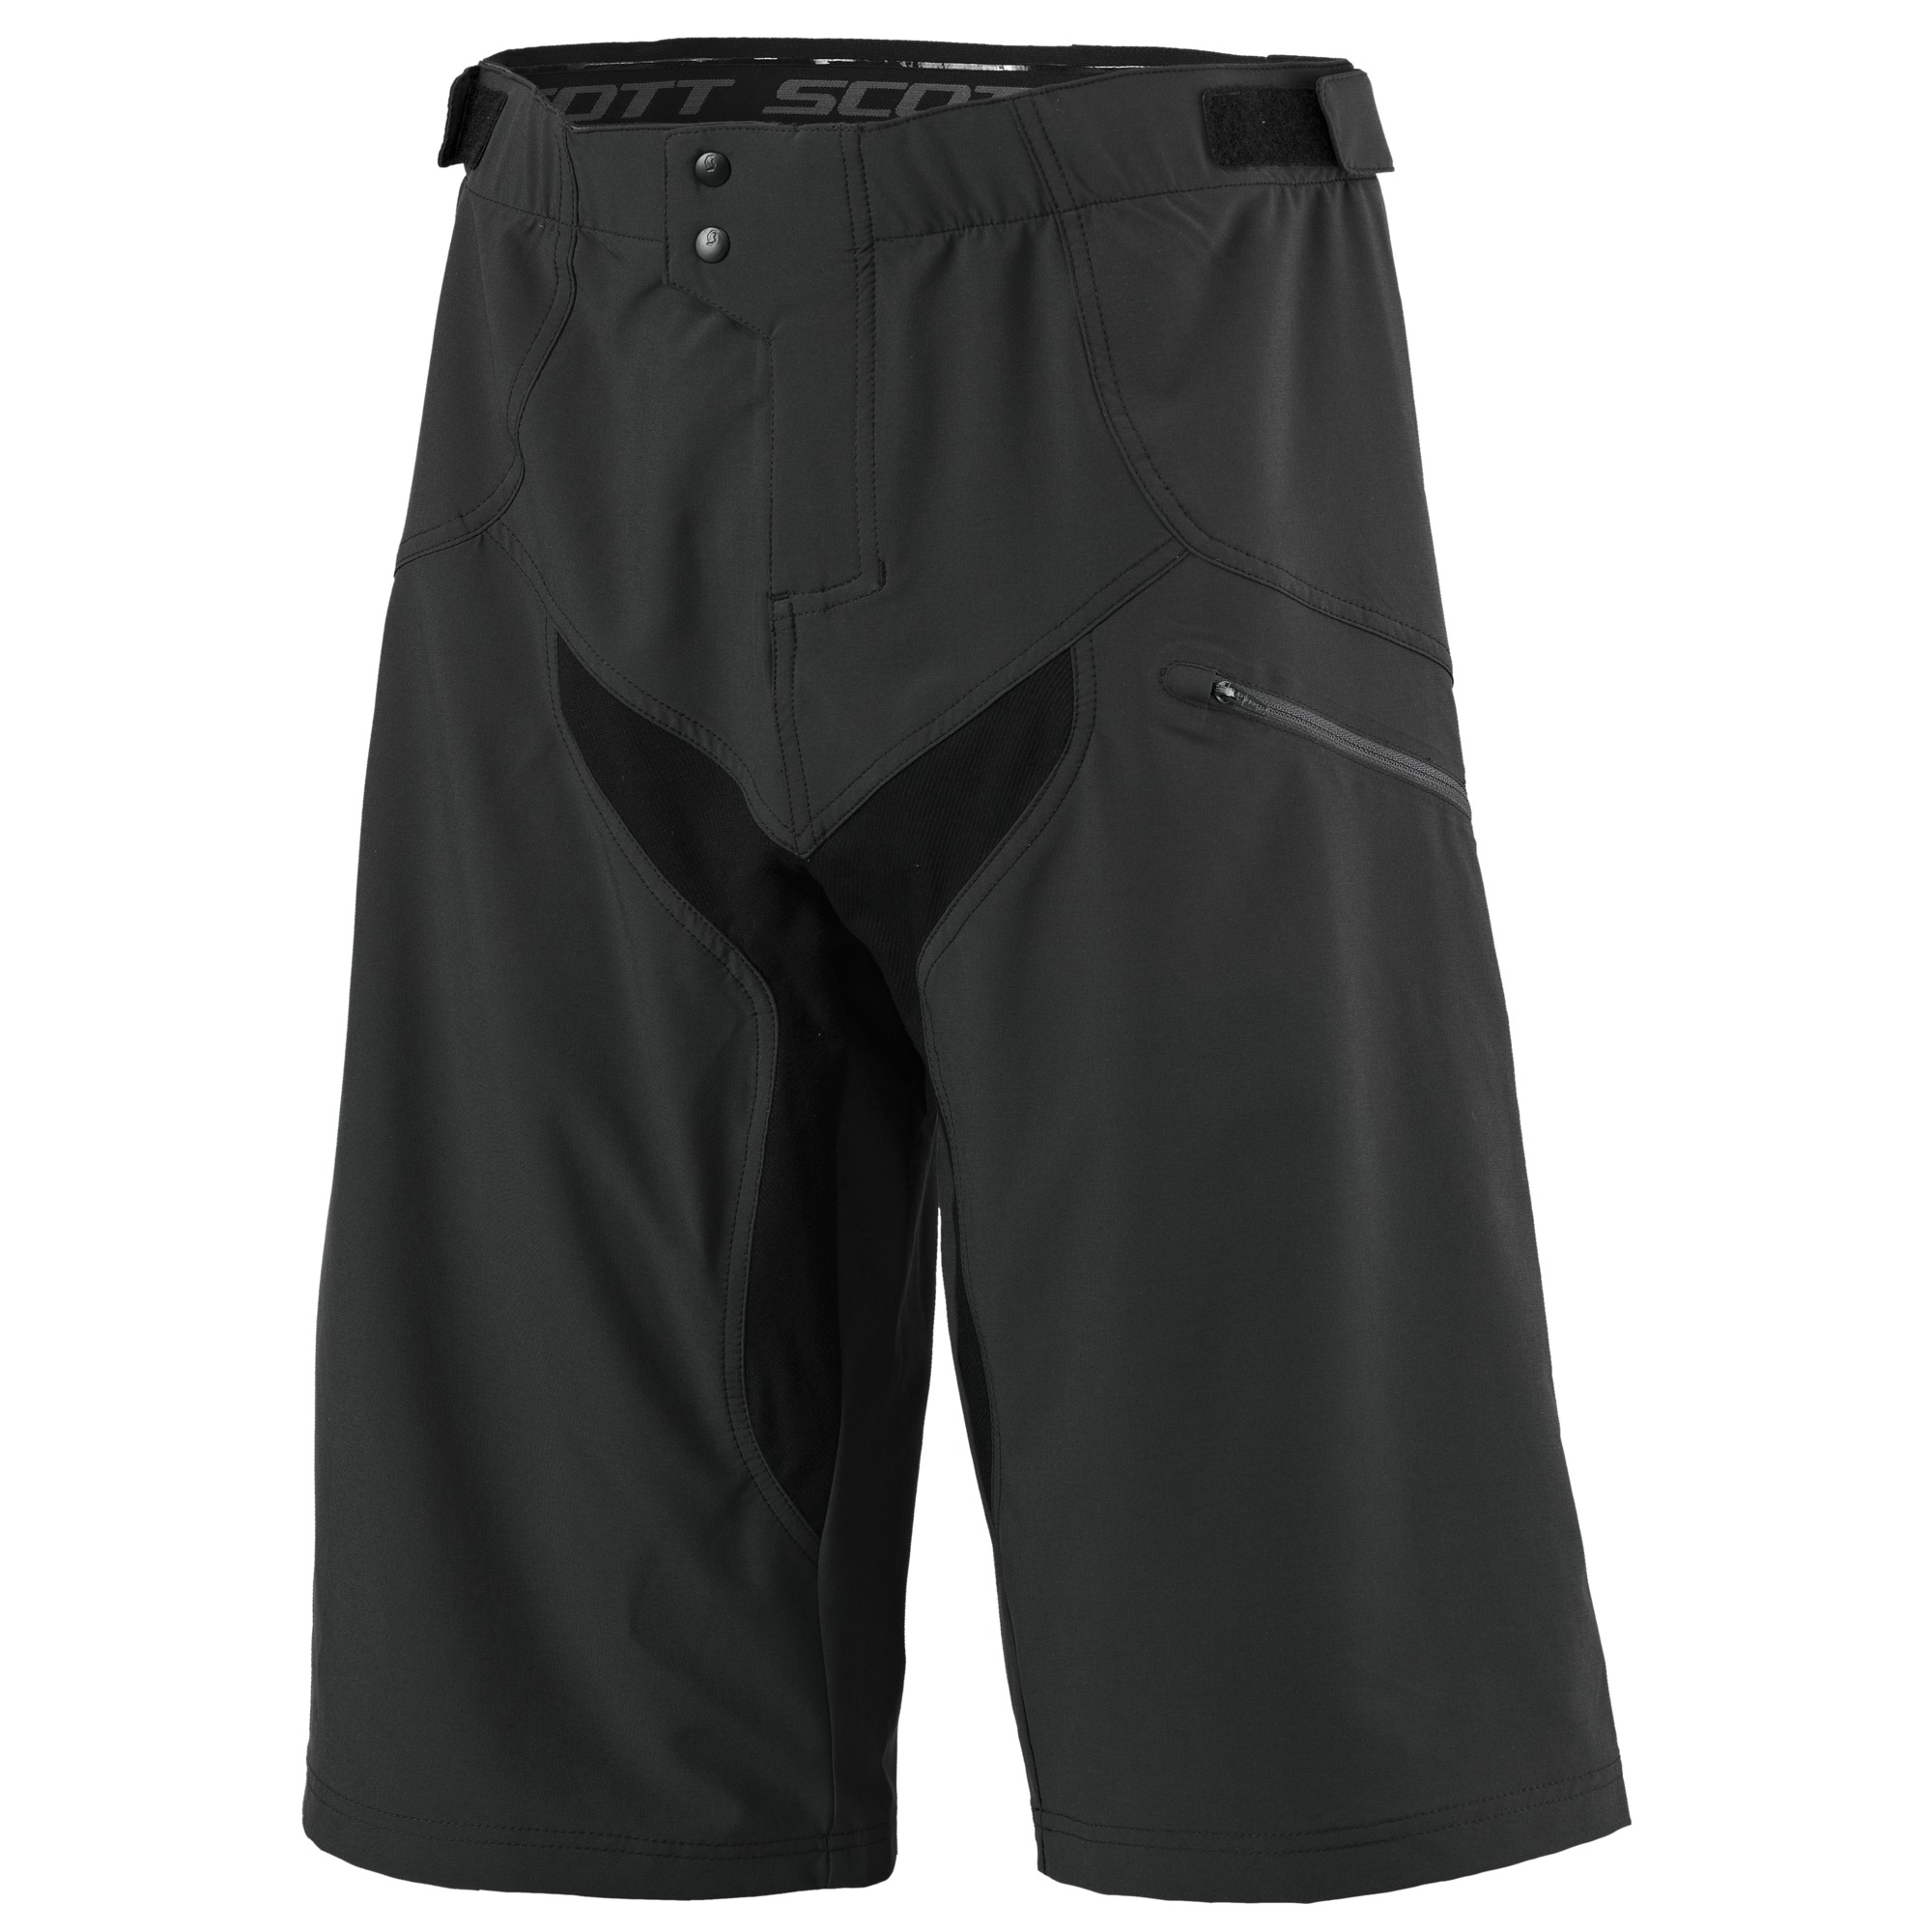 SCOTT Trail DH Shorts, weite Passform